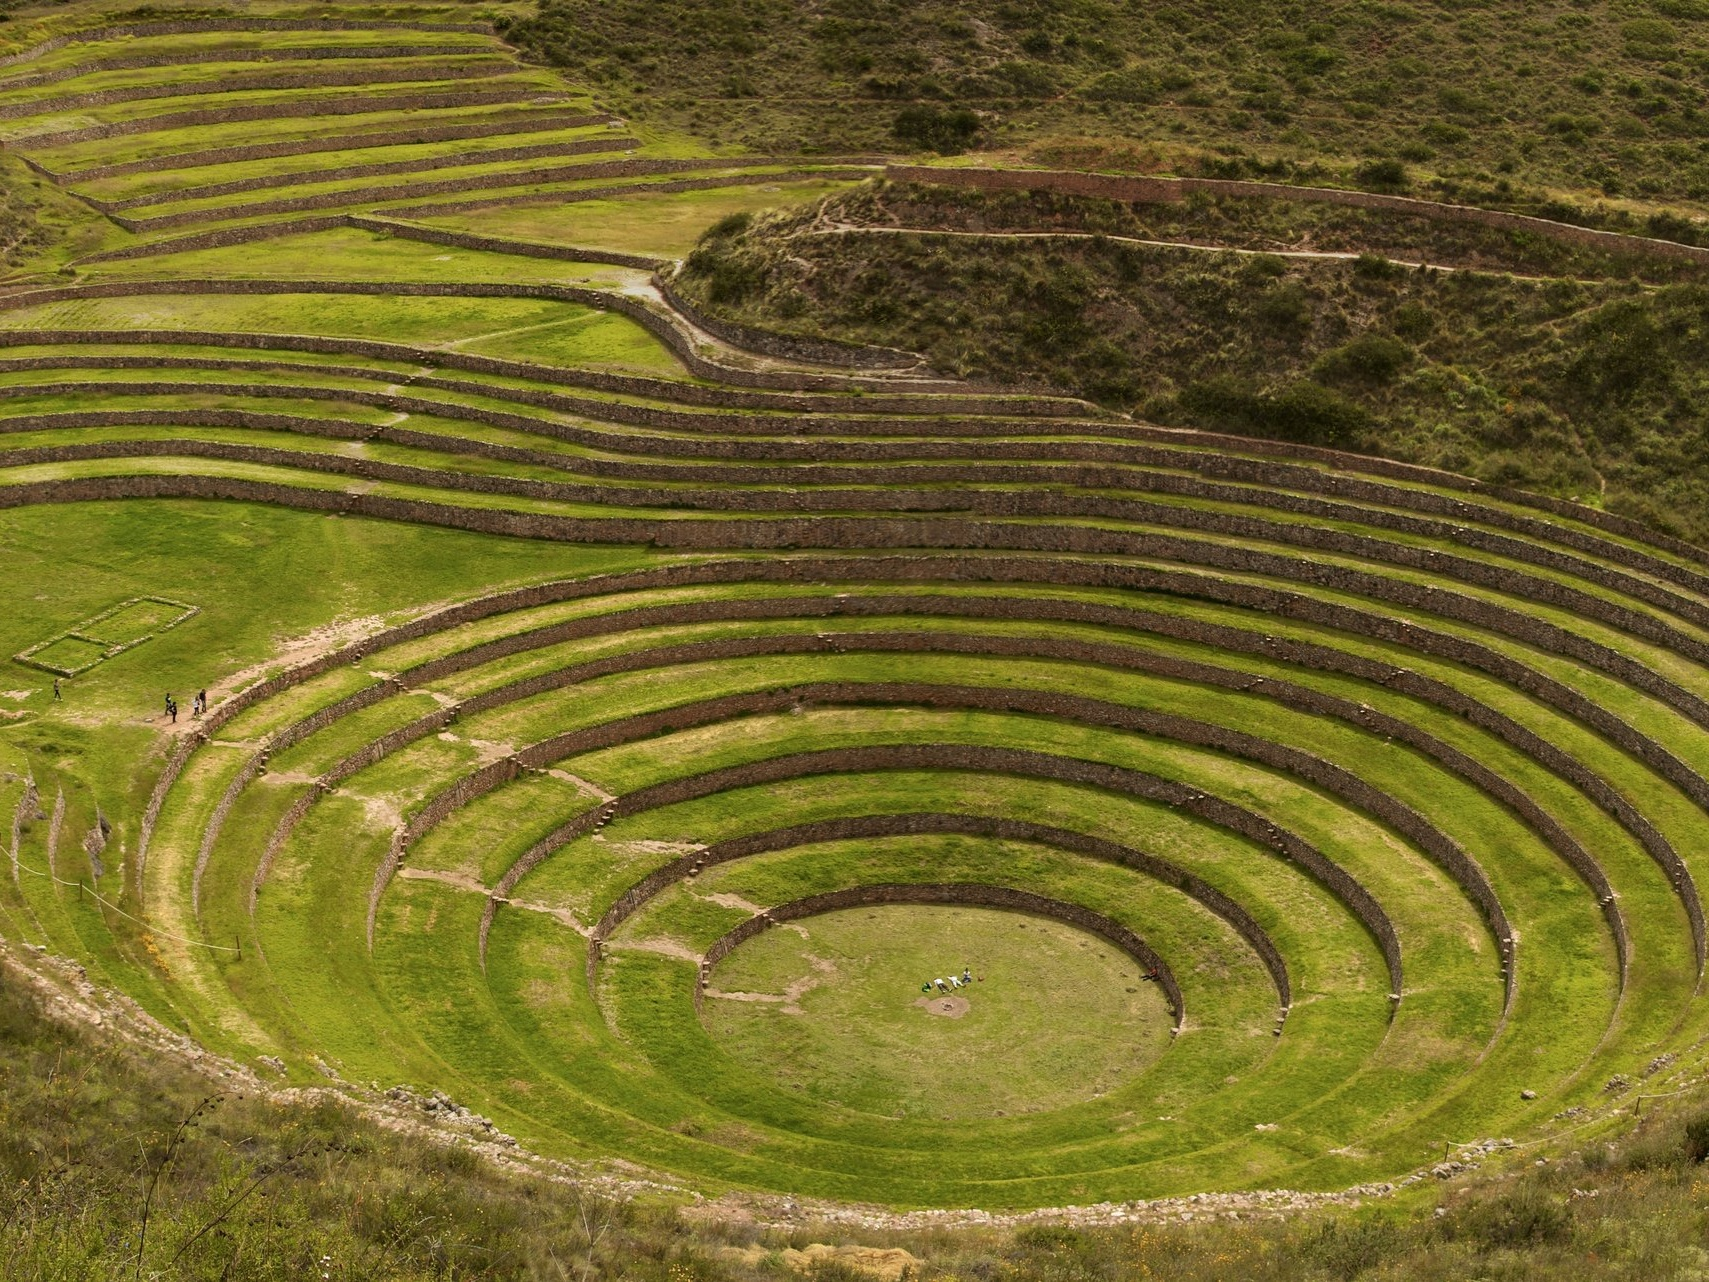 Visit The Ruins of Moray - Explore one of the more unusual Inca ruins - several huge, terraced, circular depressions, the largest of which is approximately 30 metres deep!